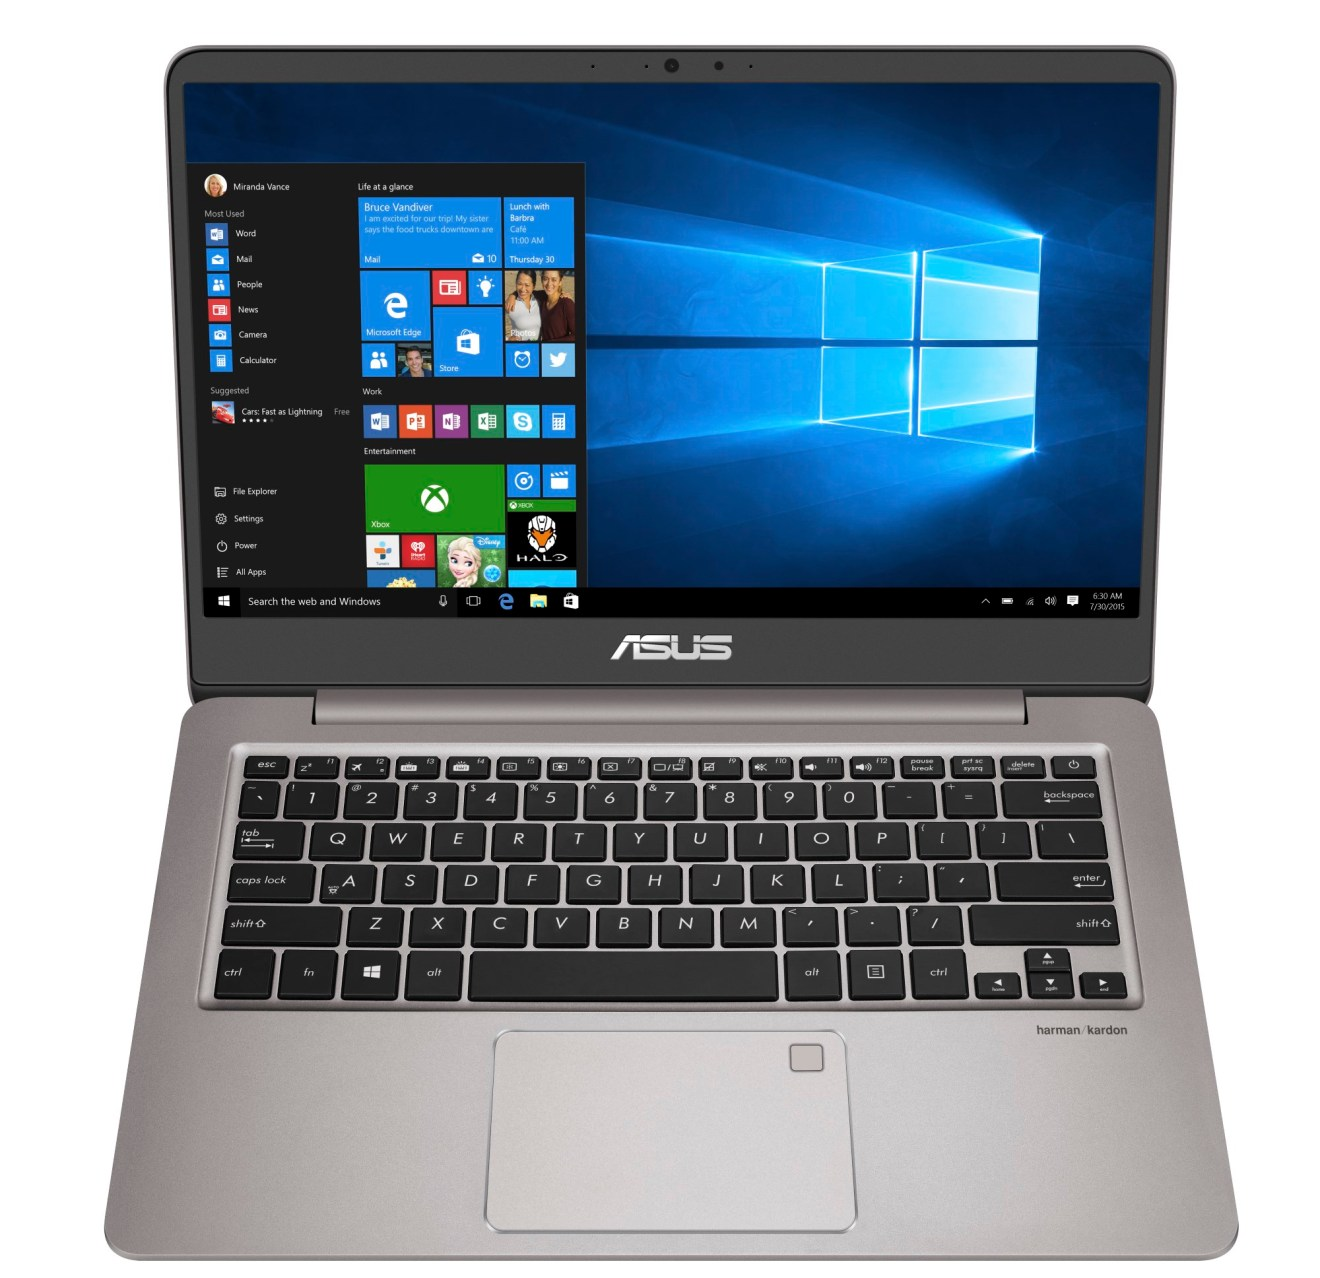 Asus ZenBook UX410UA review - straight on